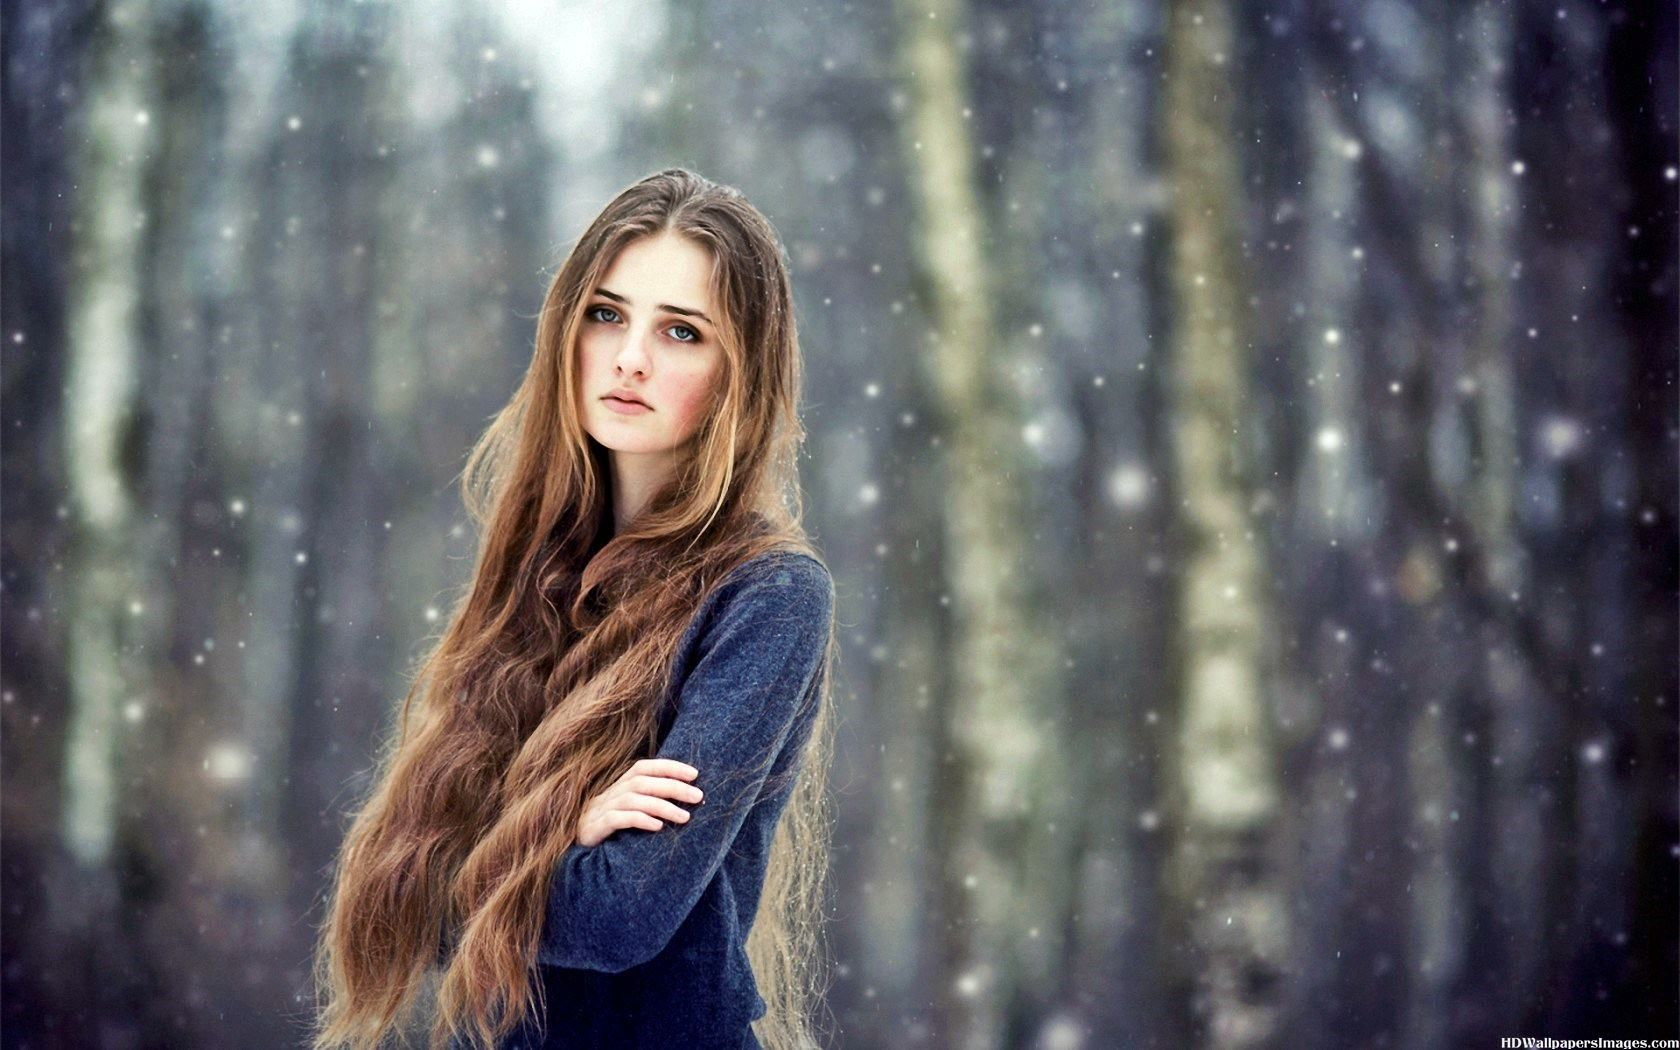 http://lecahier.com/wp-content/uploads/2016/01/Beautiful-Girl-With-Long-Hair-In-Snow-Images.jpg